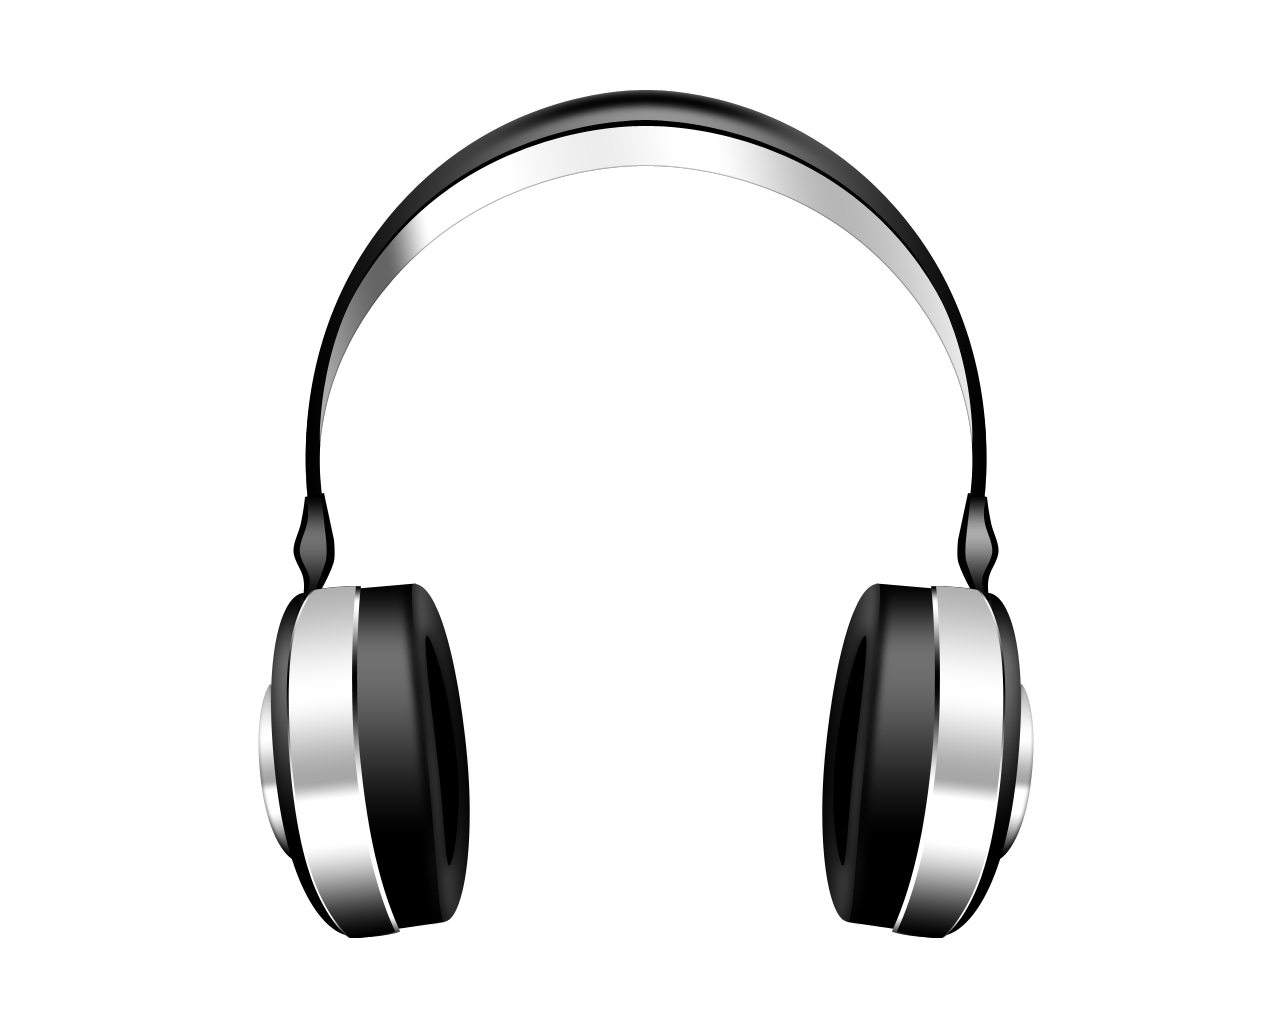 Ear phones png. Music headphone image purepng